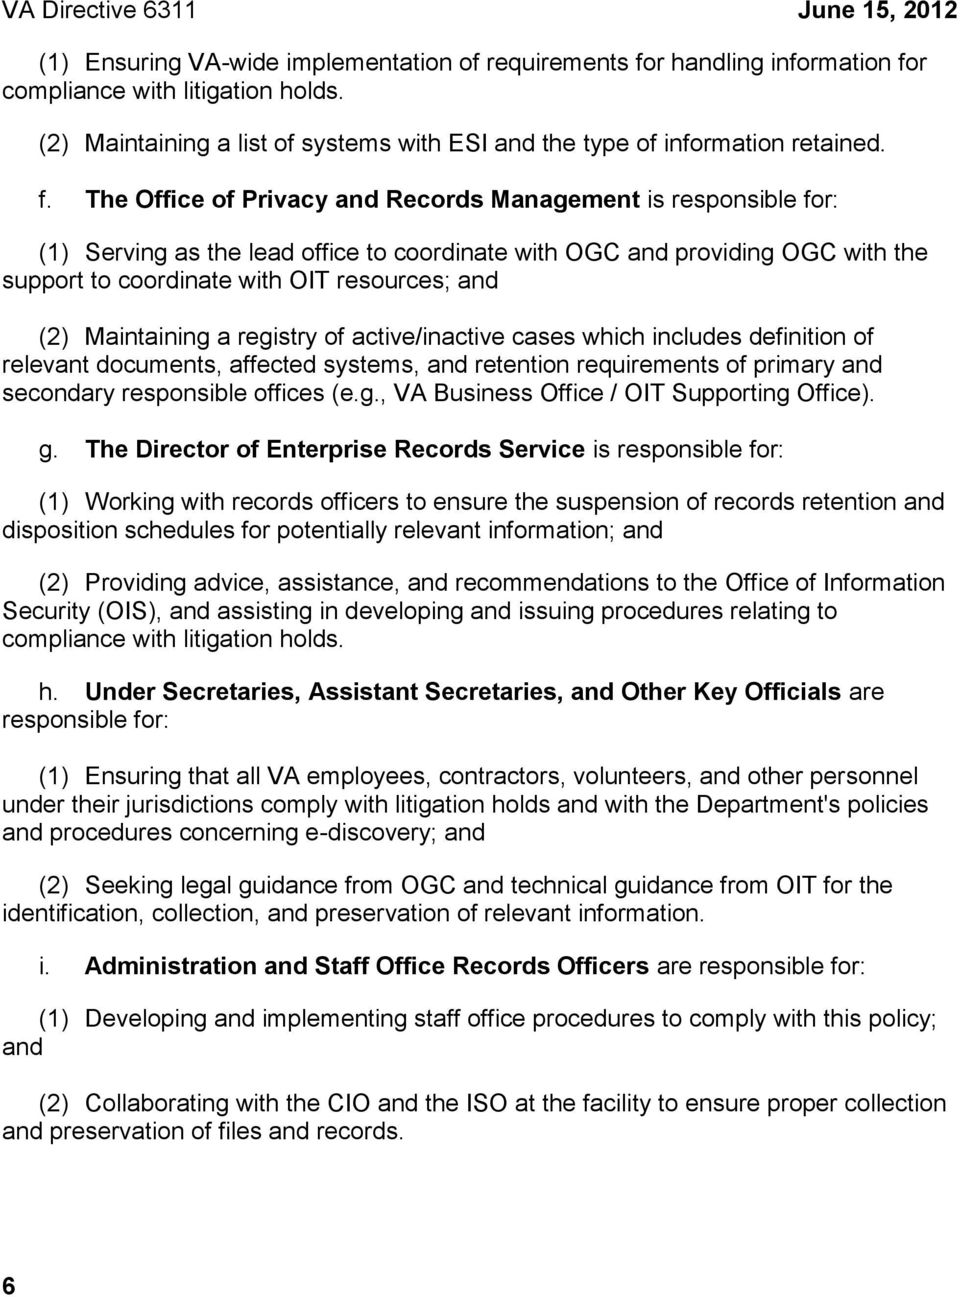 The Office of Privacy and Records Management is responsible for: (1) Serving as the lead office to coordinate with OGC and providing OGC with the support to coordinate with OIT resources; and (2)